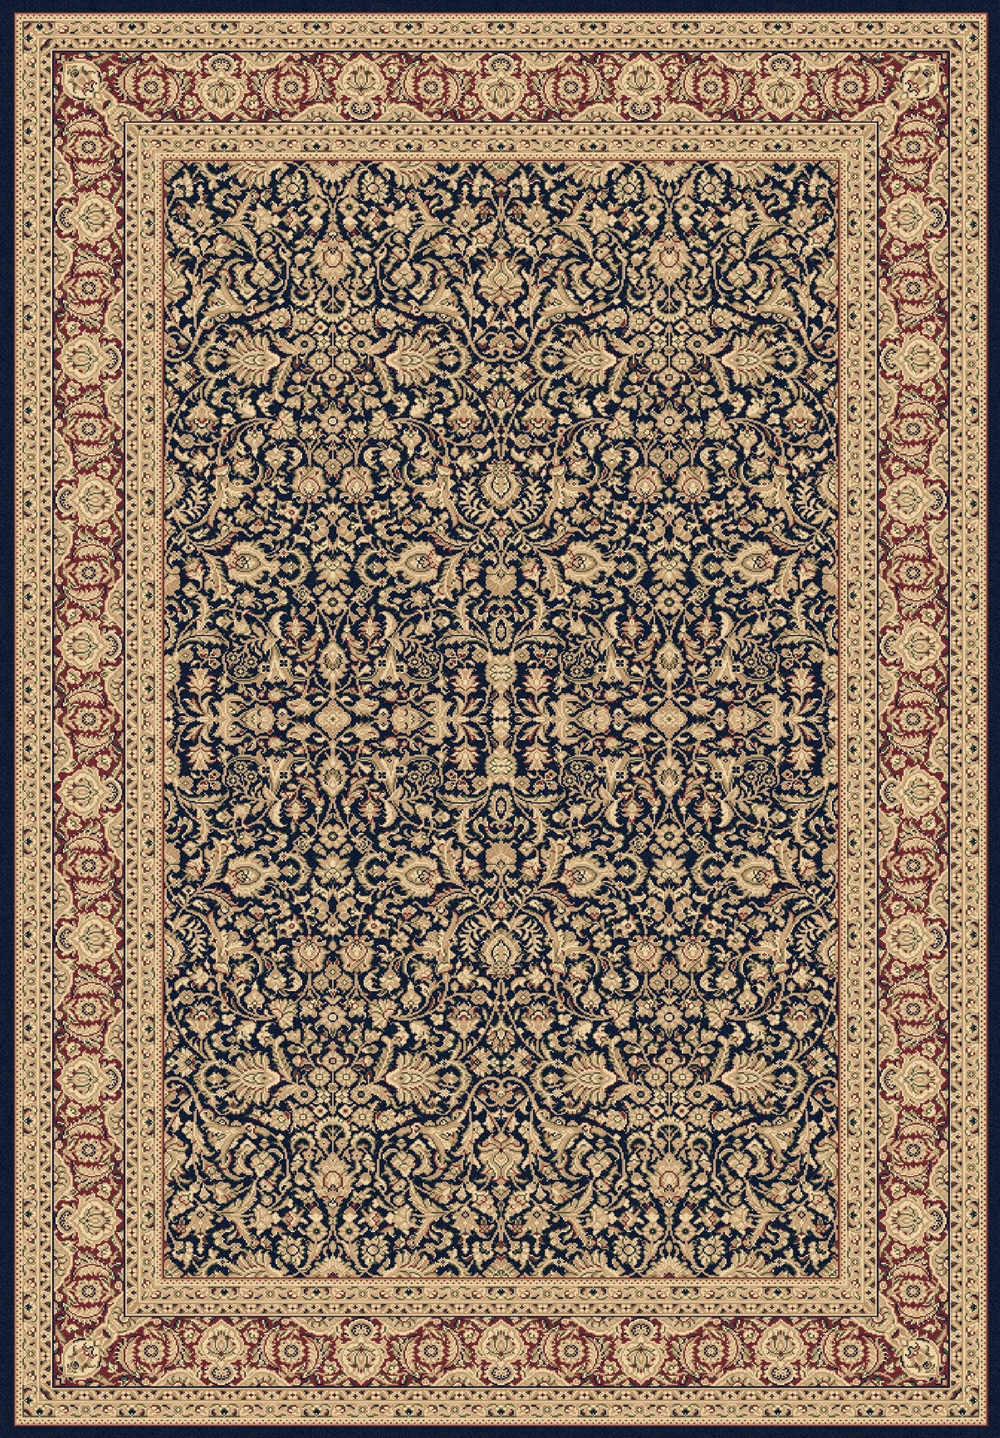 Navy 58004 530 Legacy Rug By Dynamic